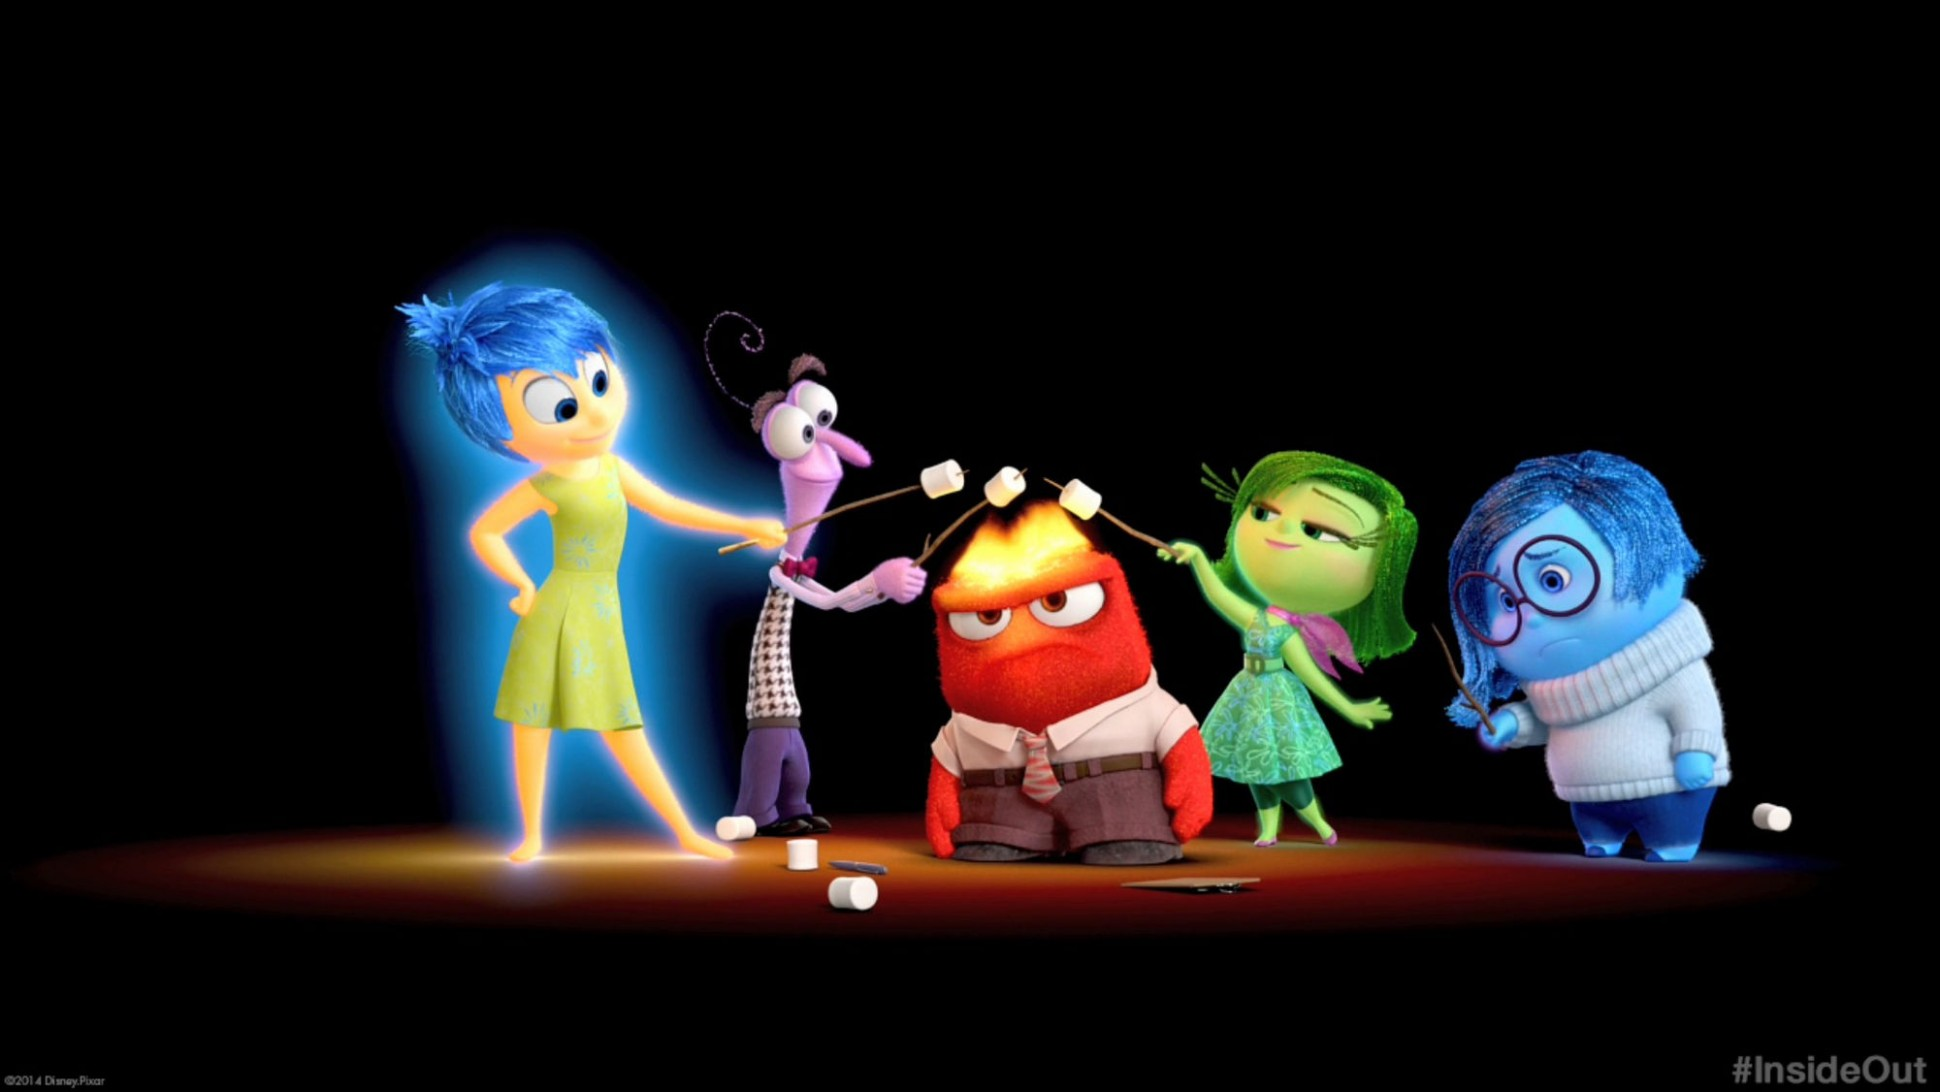 Inside The Workings Of Inside Out Scad District